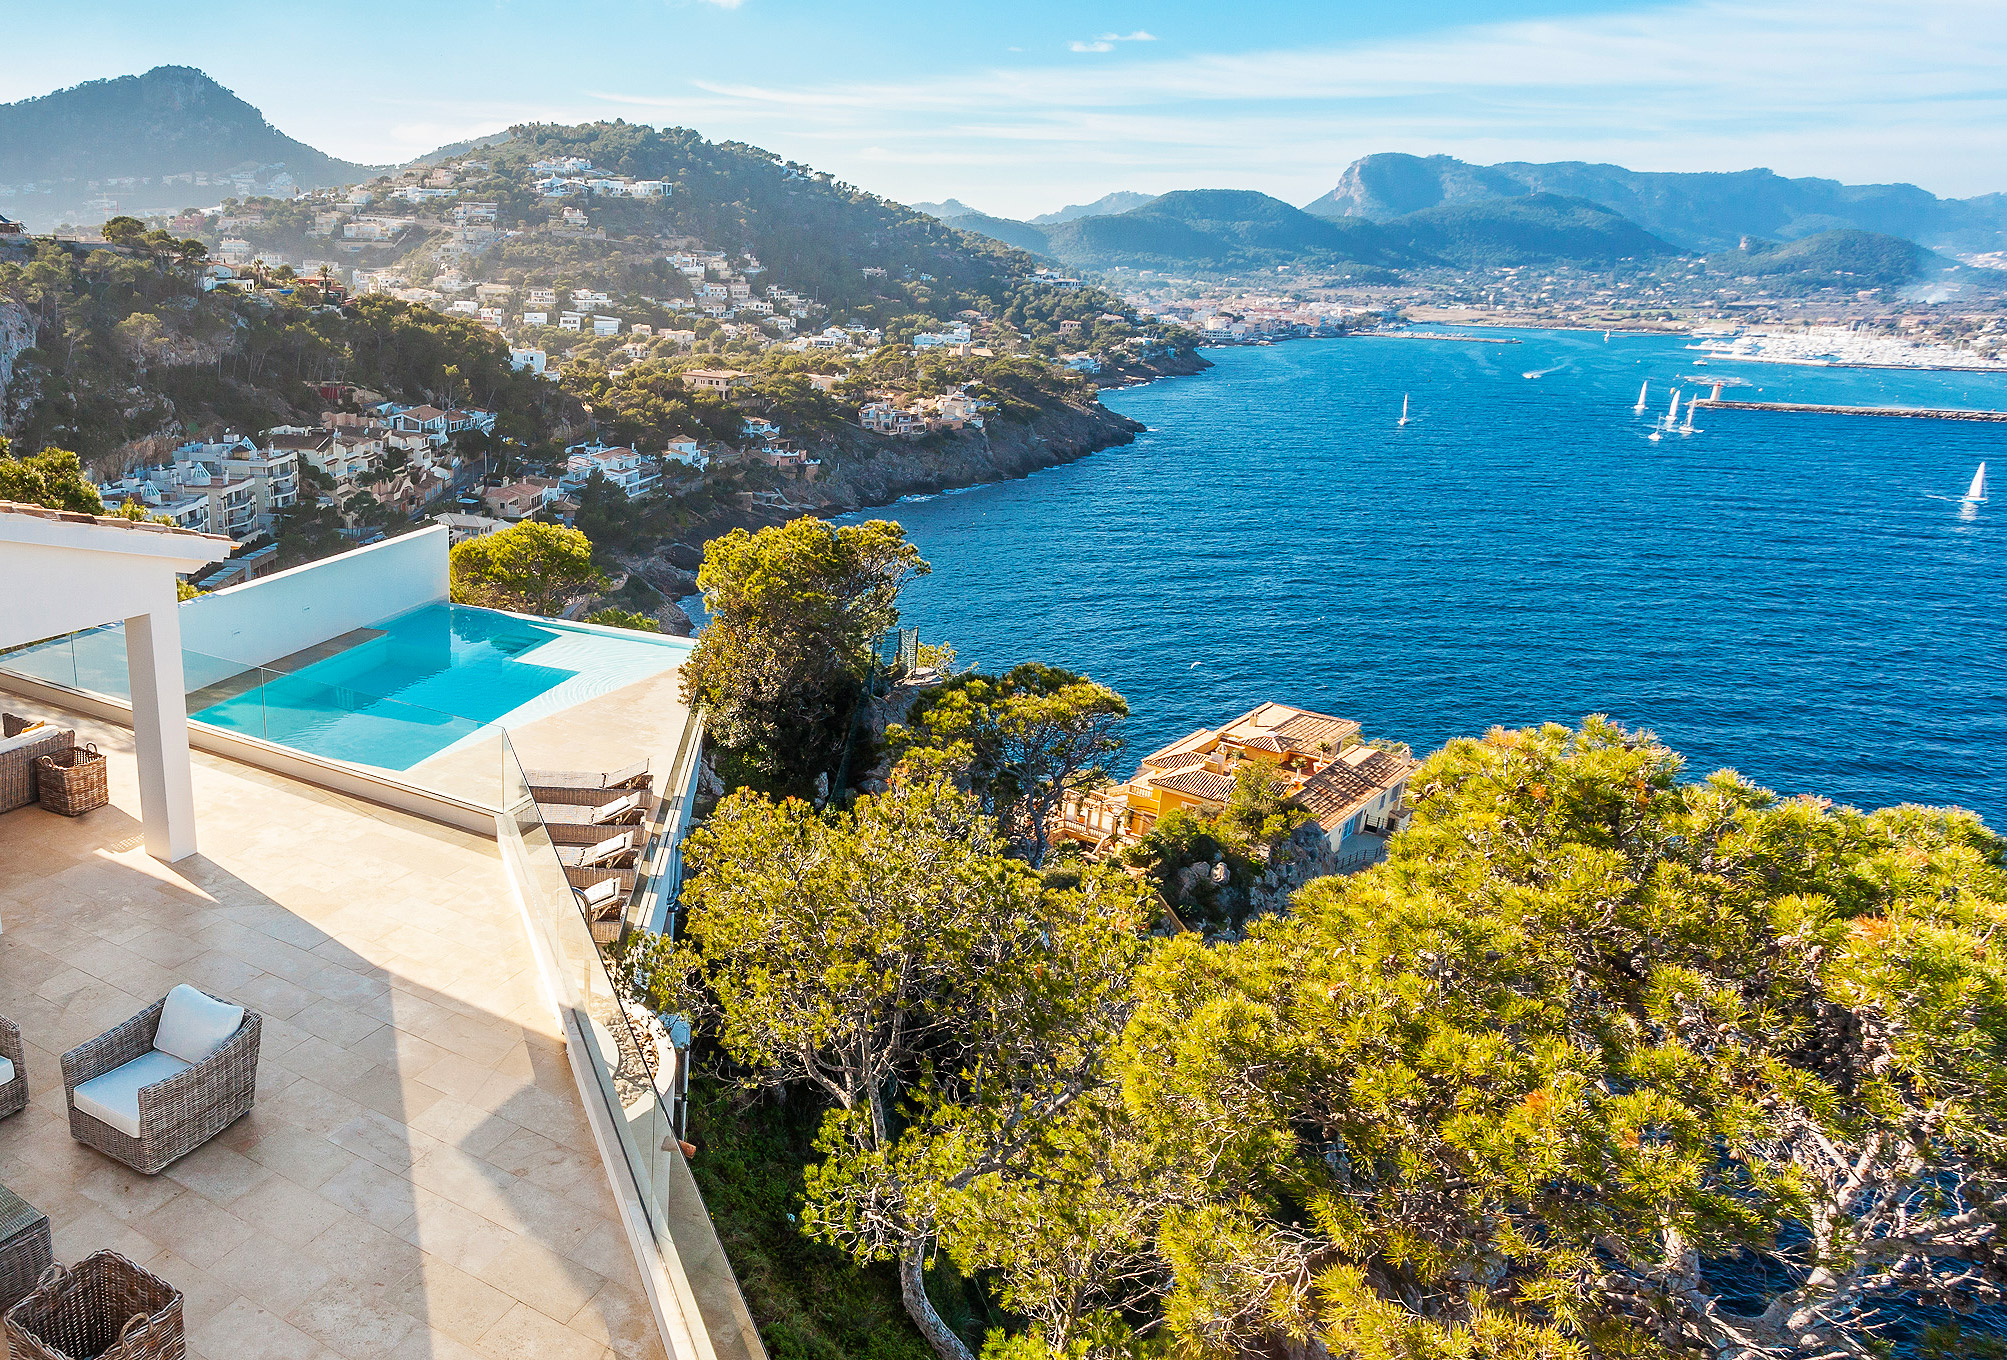 Spain's Balearics Property Market Is Set for A Record Year